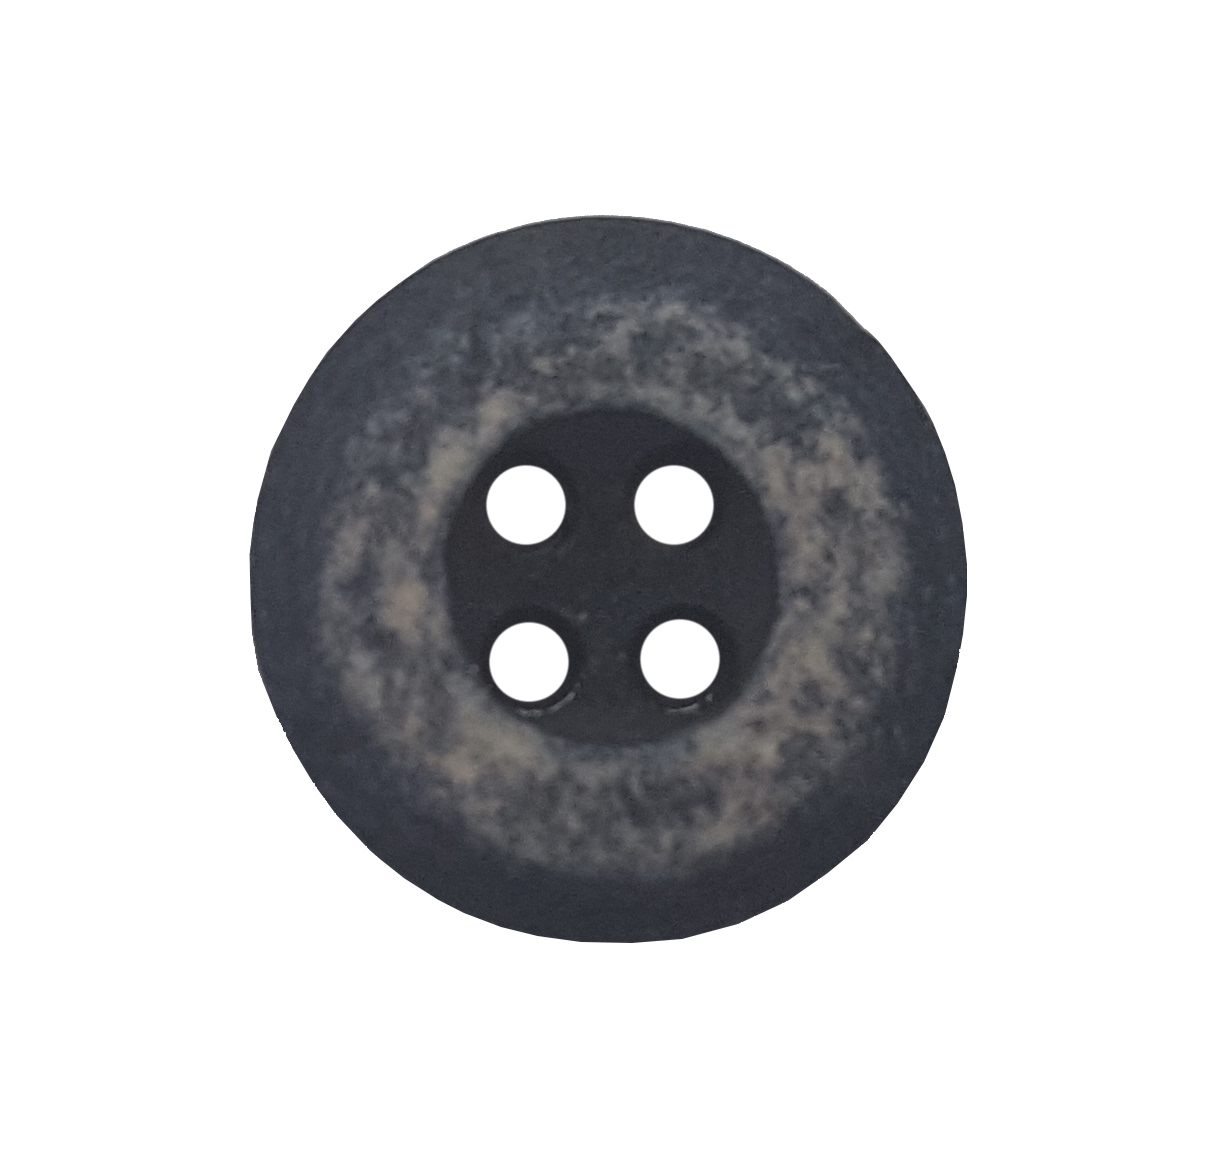 4-Hole Rimmed Eco Buttons